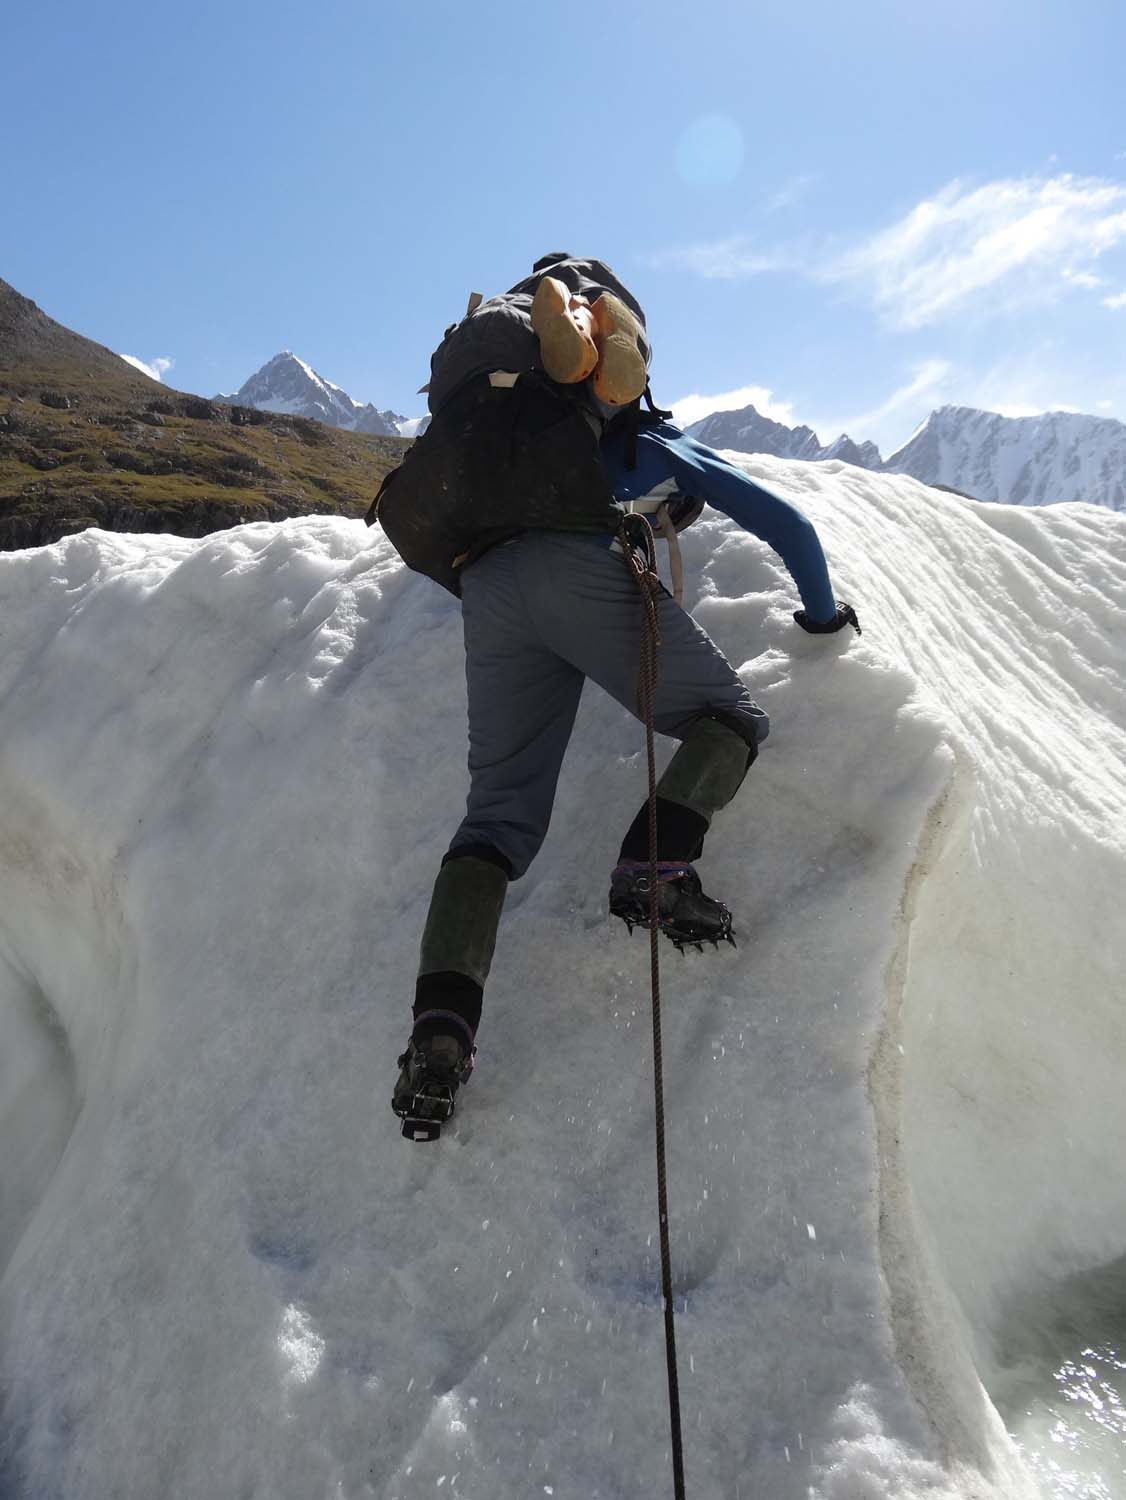 crampons make it easier to get up ice walls though